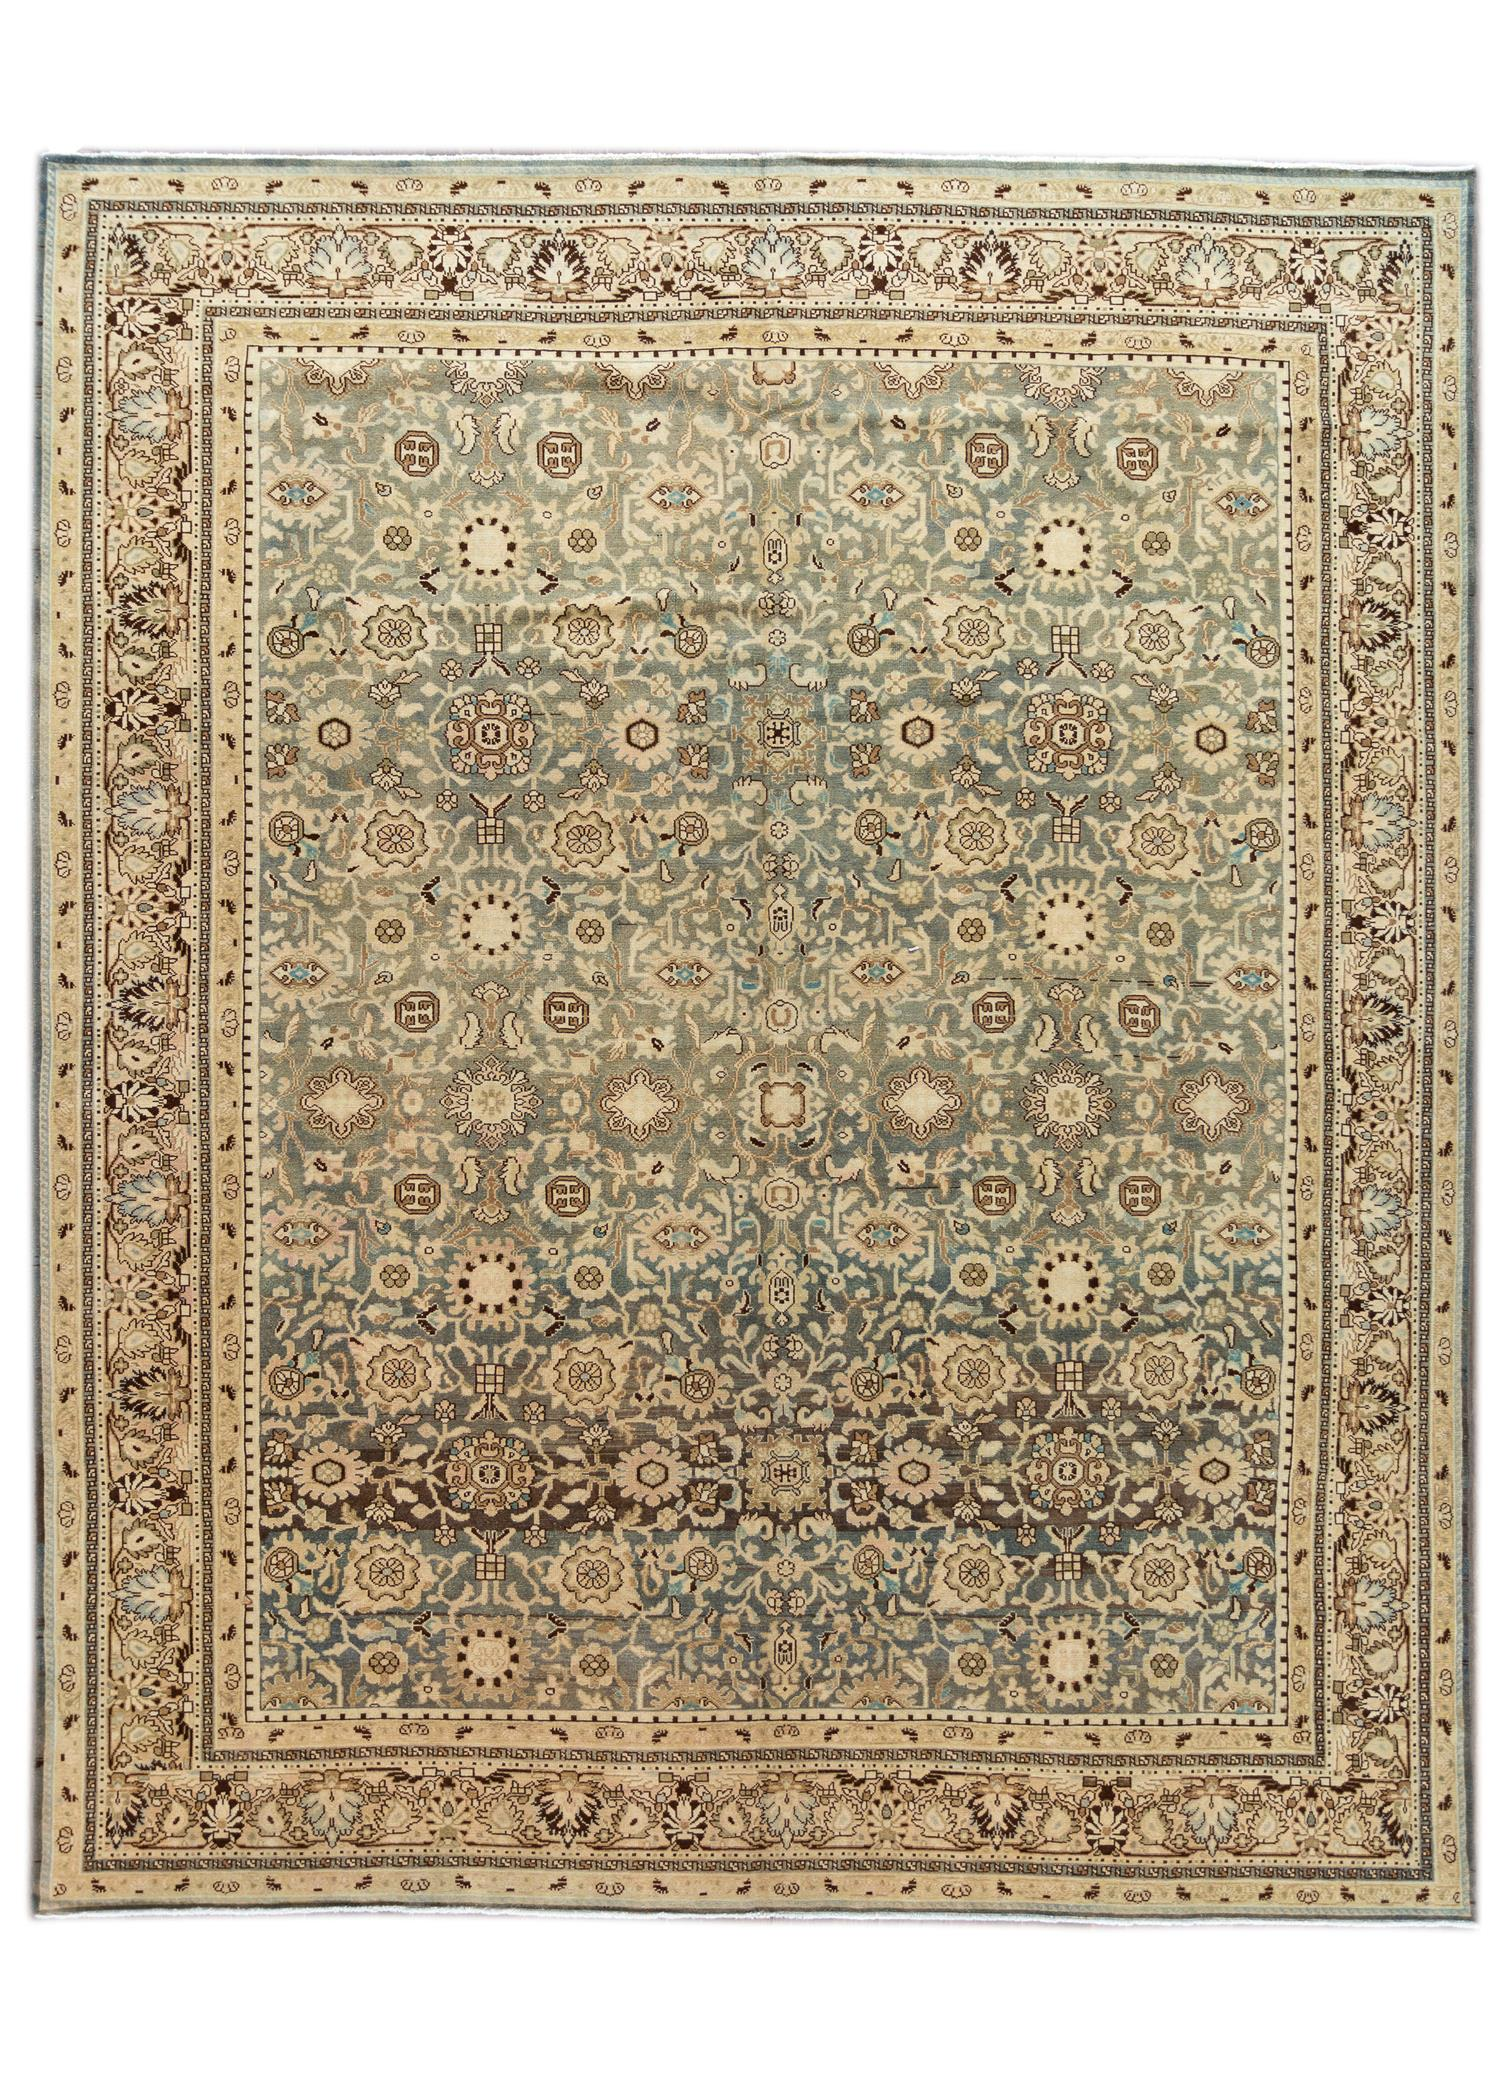 Antique Malayer Rug, 11' x 14'